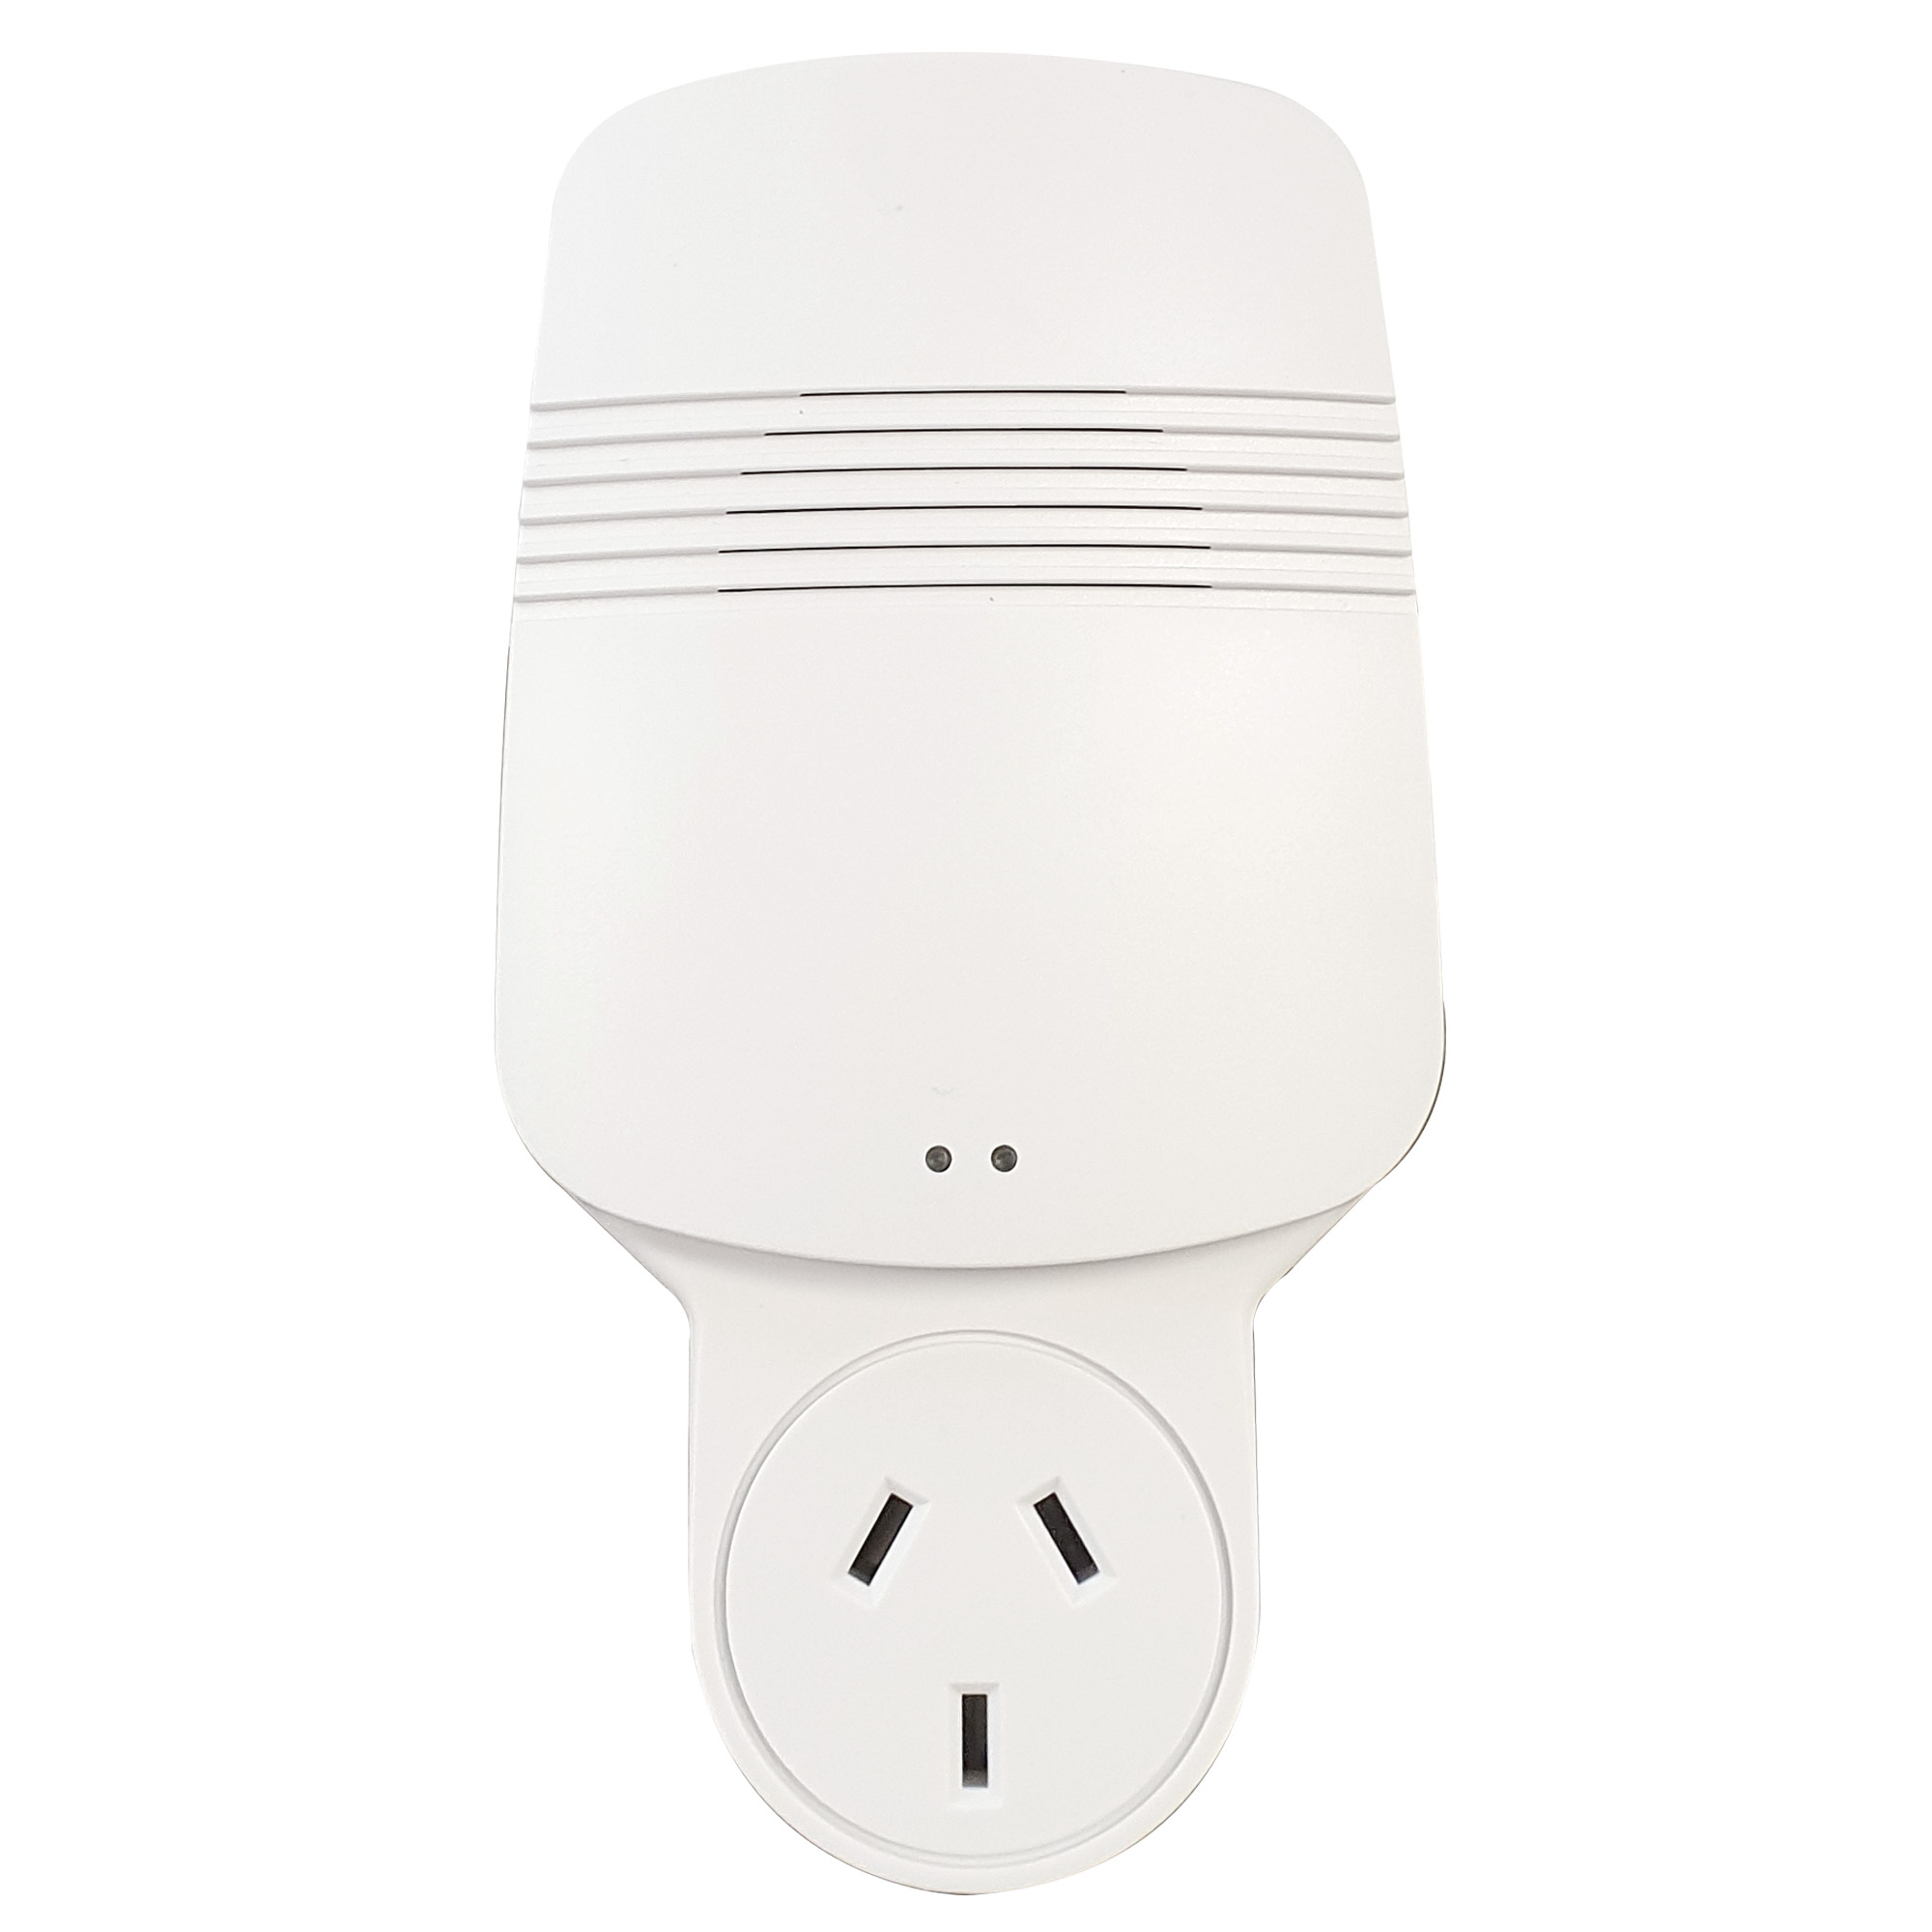 Benson Plug-In Door Chime with Extra Power Socket image